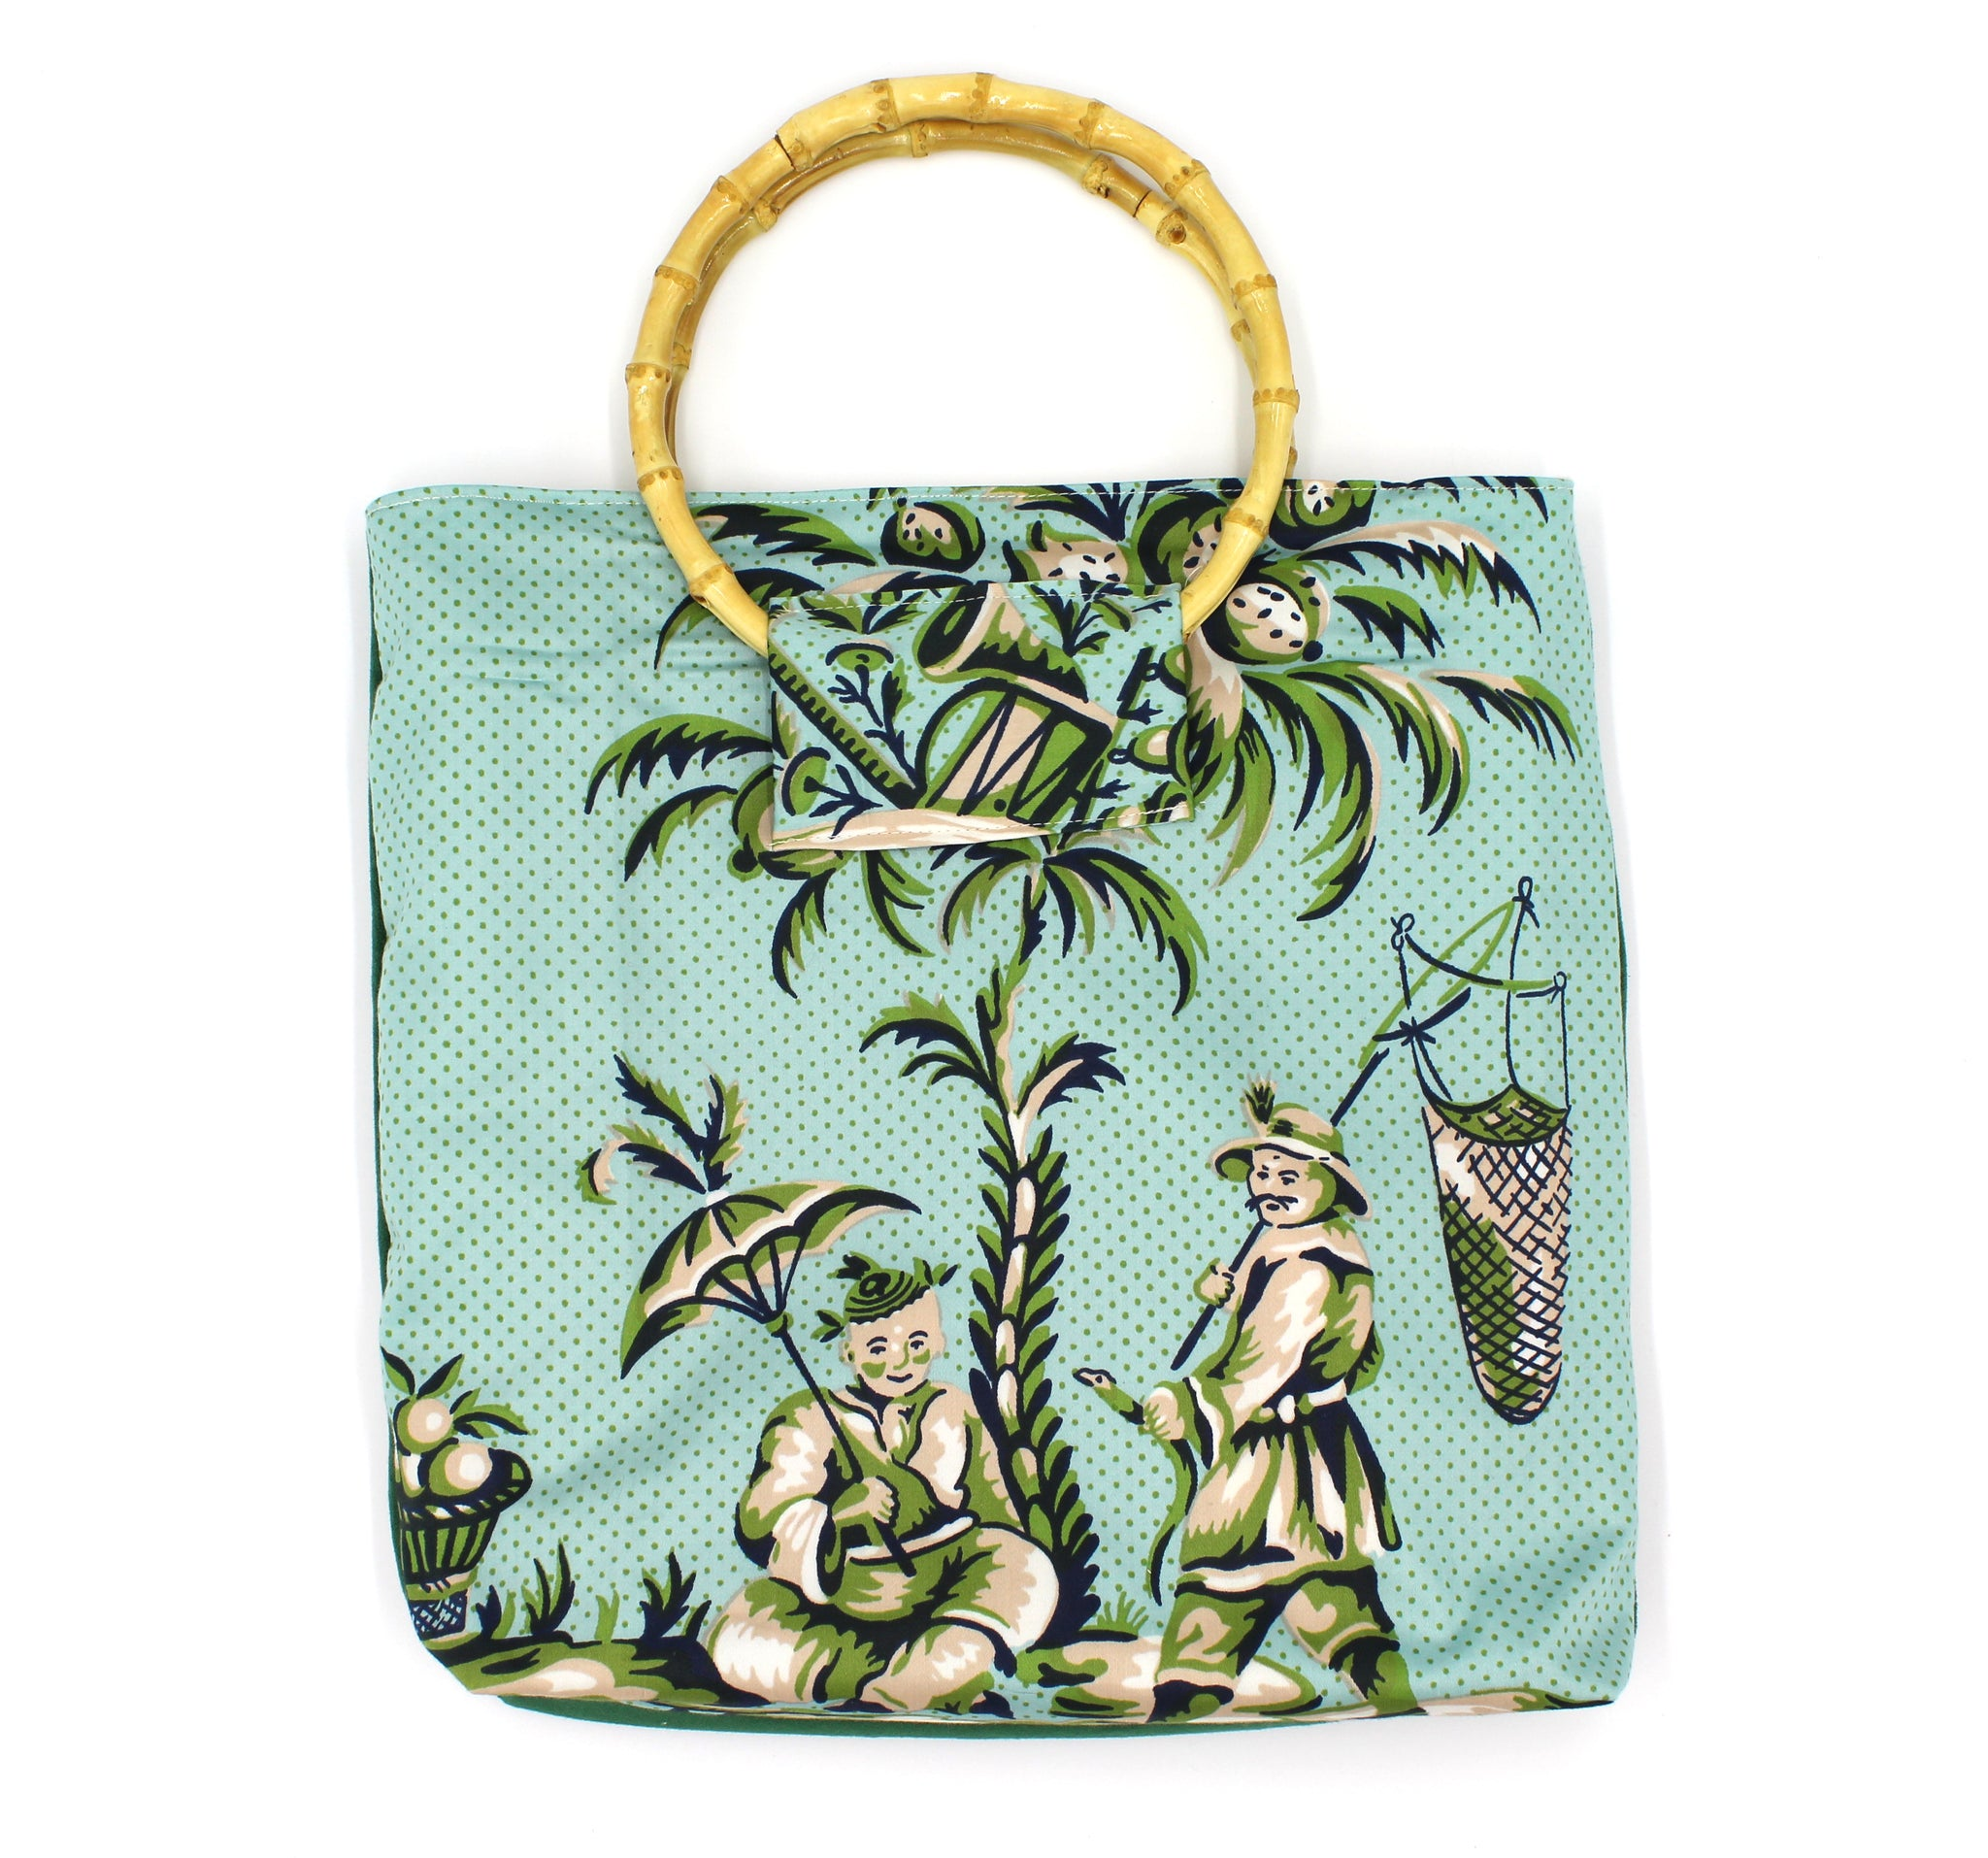 9776054b16 the birch bag - littlebags.BIGIMPACT